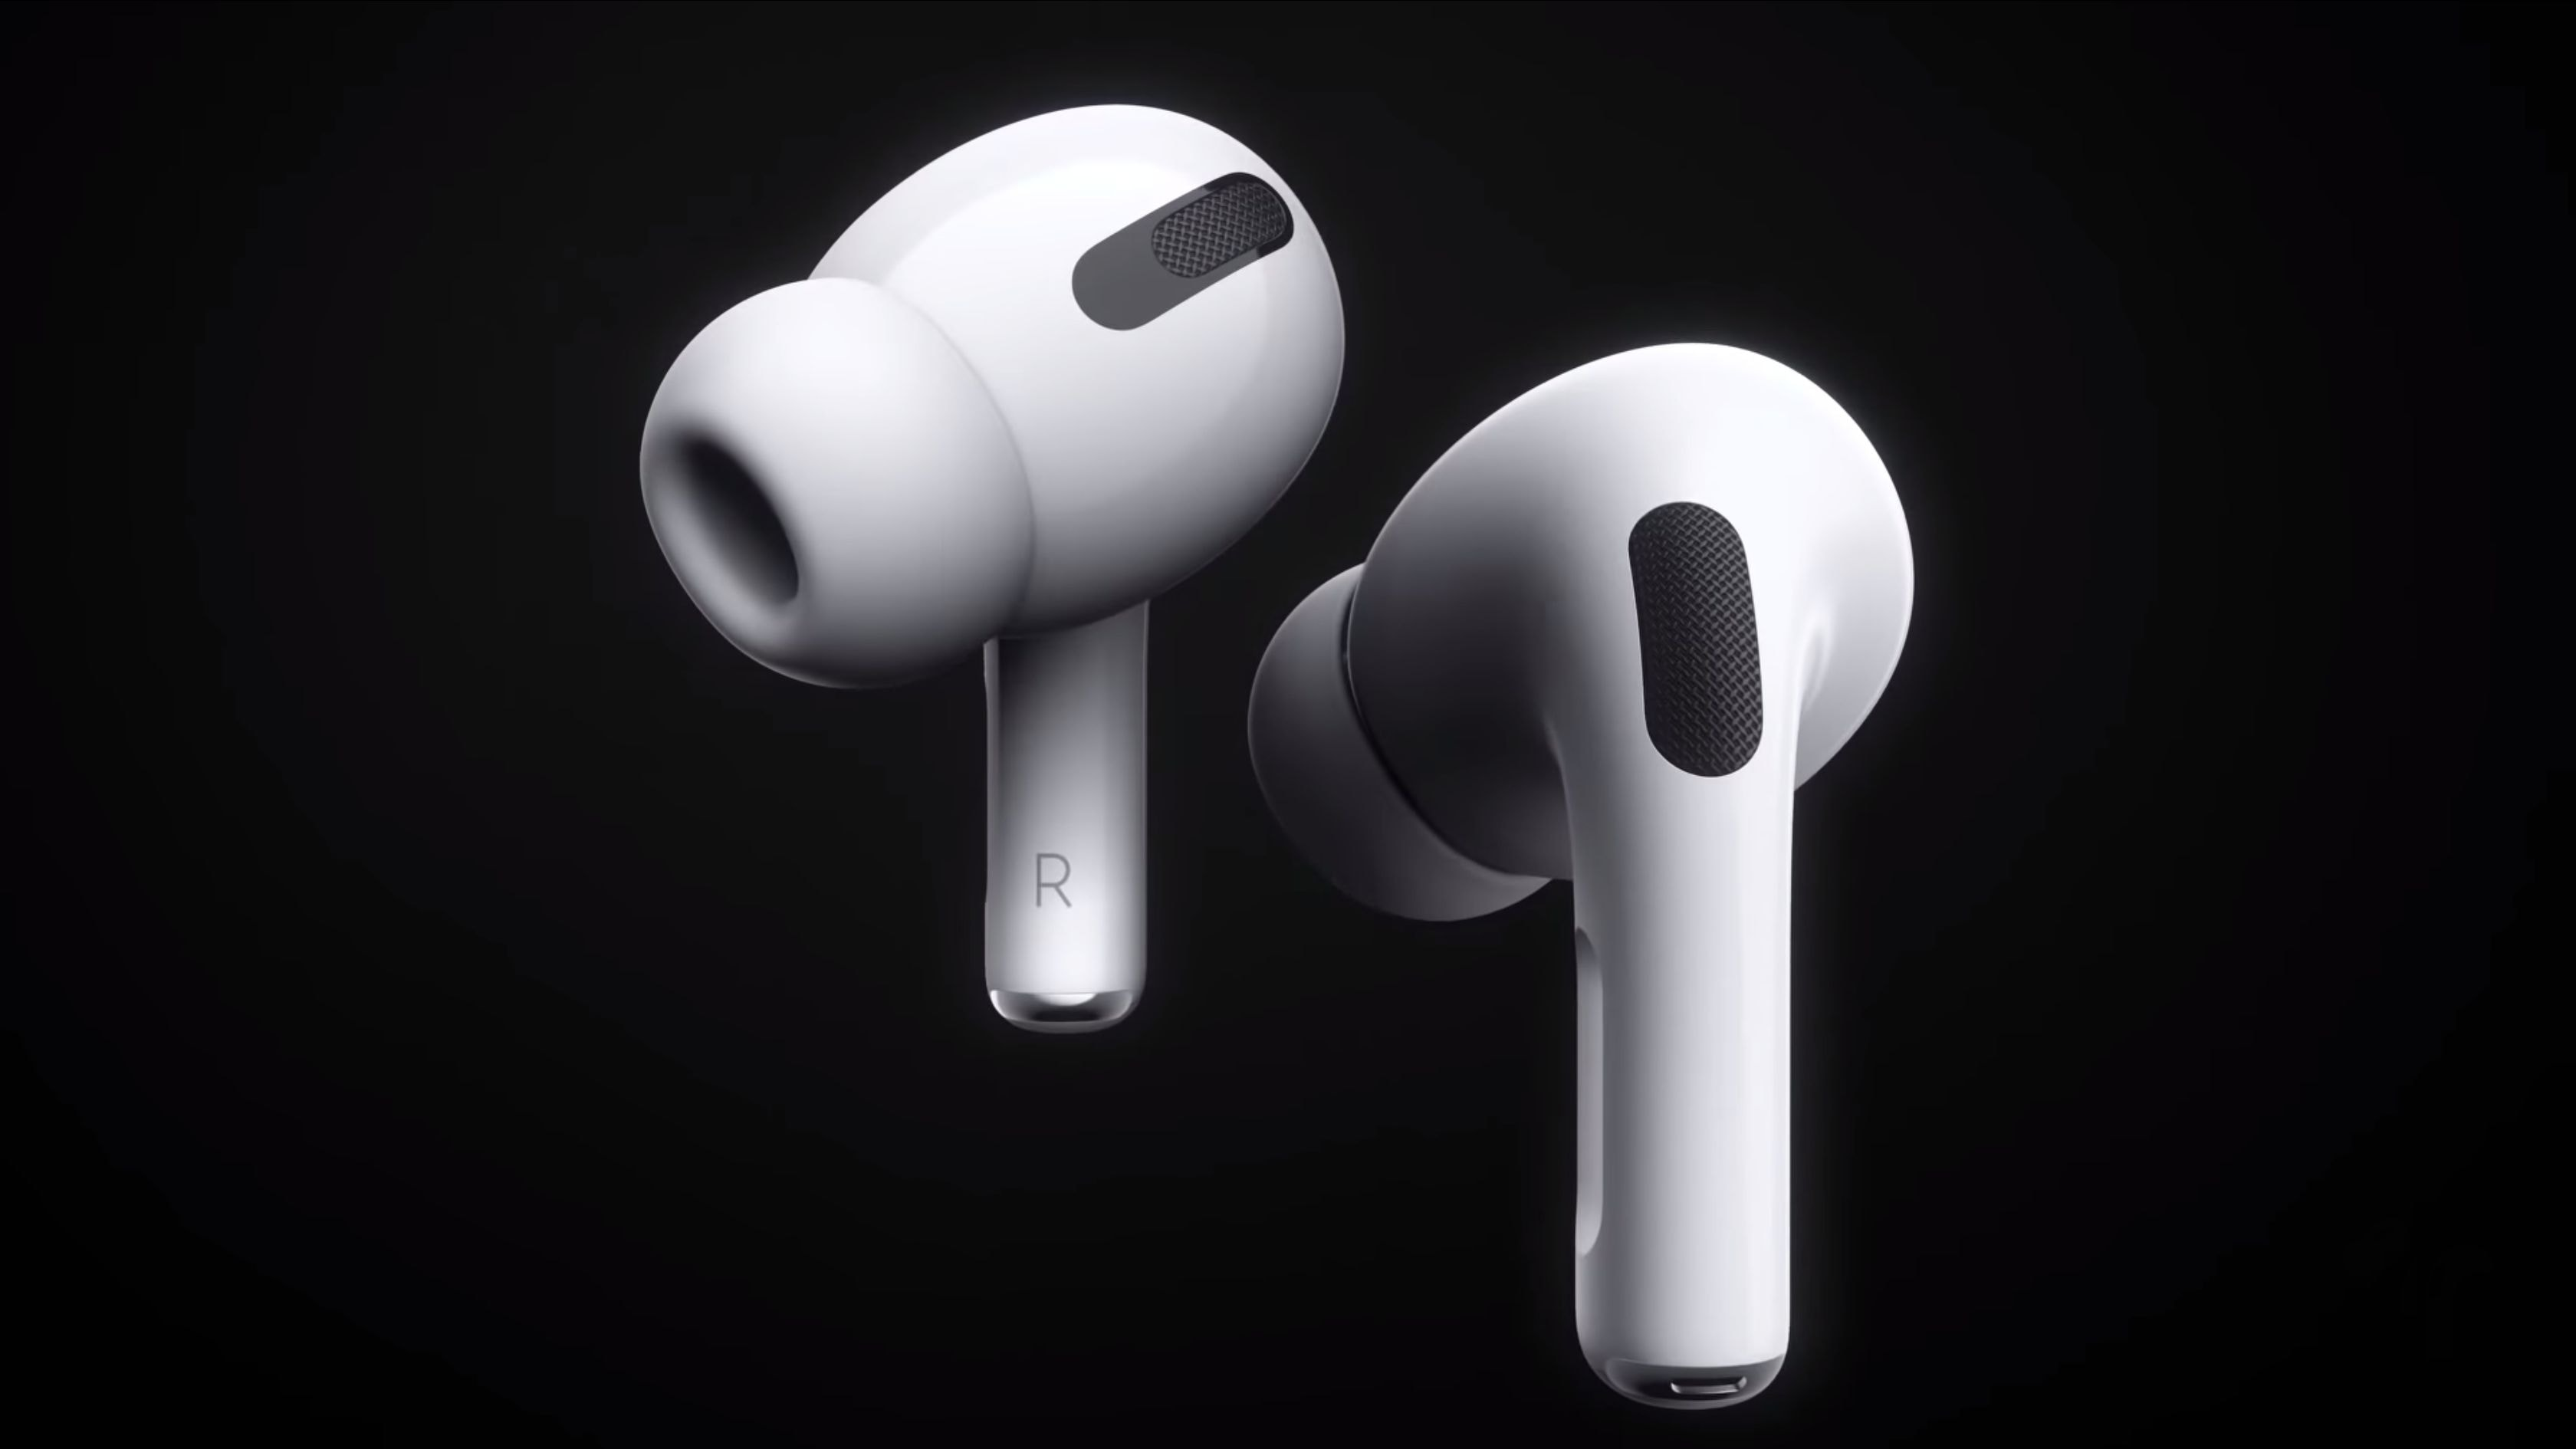 AirPods rule the 'hearables' market, but Apple's lead is shrinking